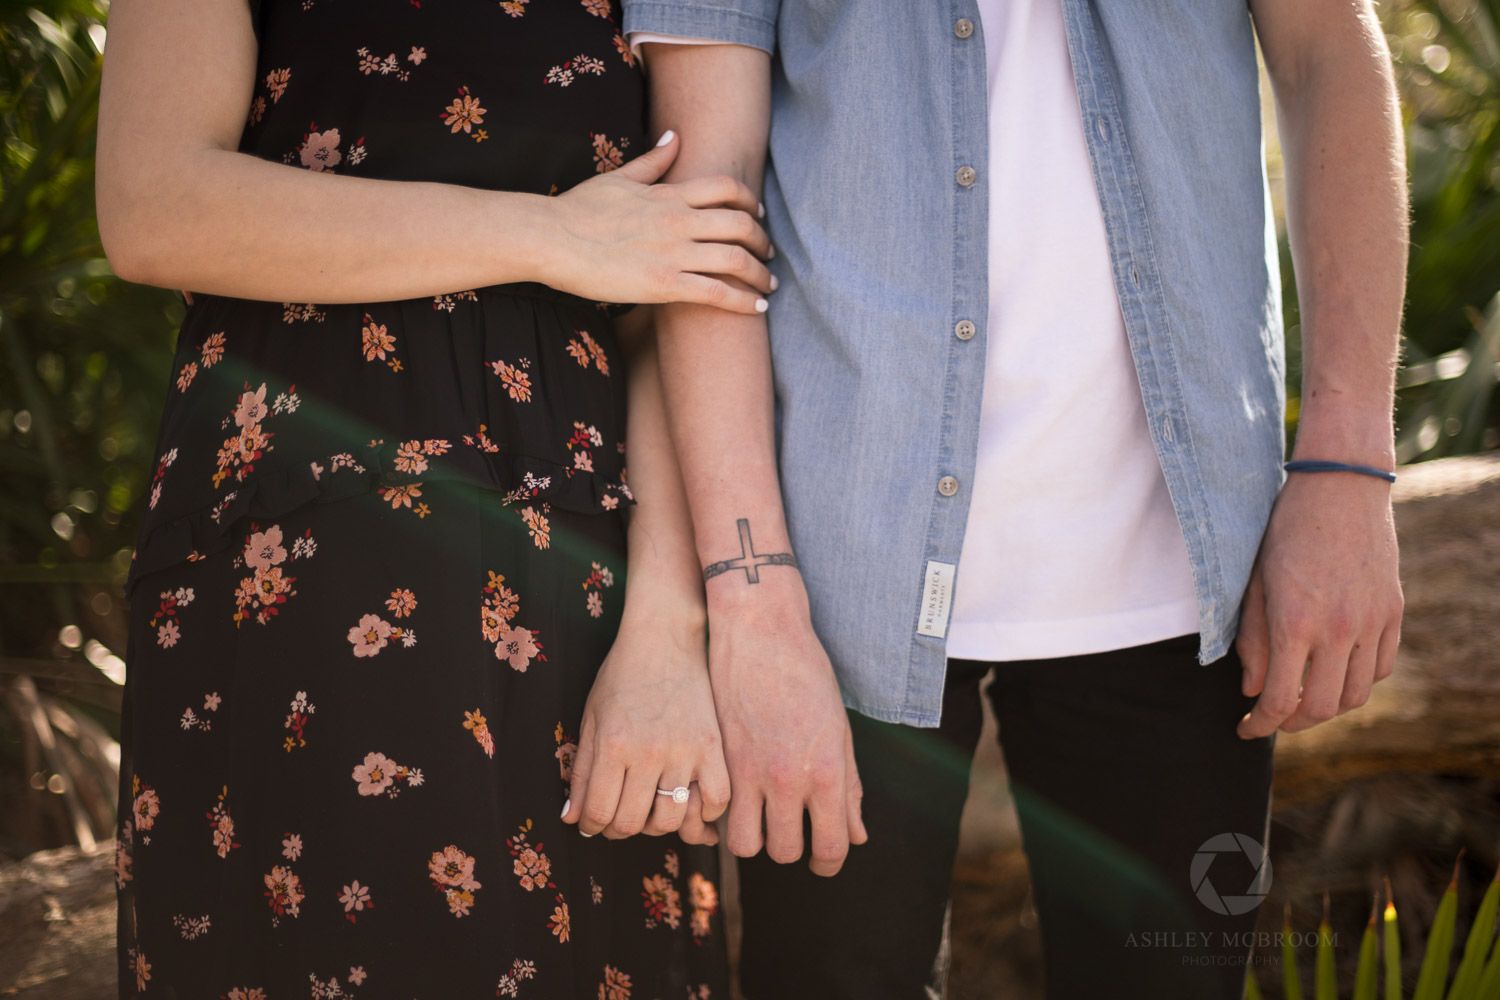 tattoos and engagement ring detail shot